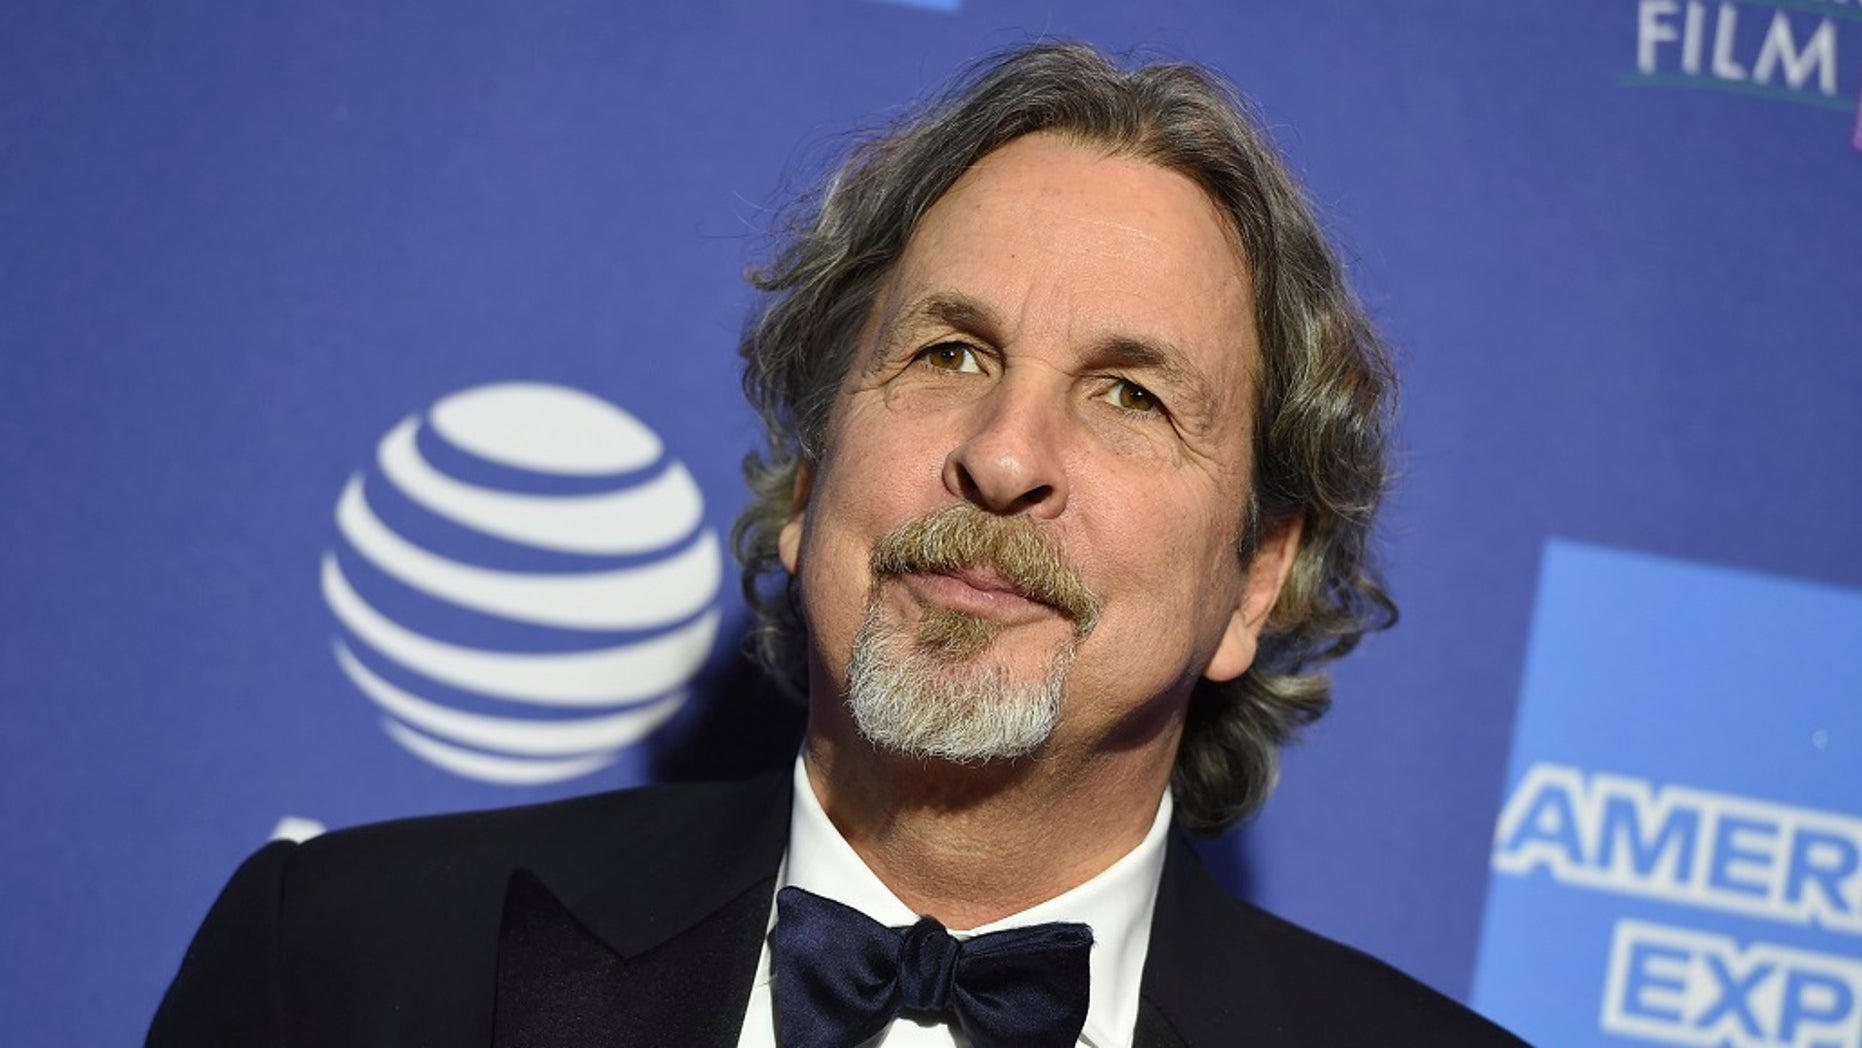 Green Book director Peter Farrelly says he's deeply sorry and embarrassed after film website The Cut found an old story where colleagues said Farrelly liked to flash his genitals as a joke